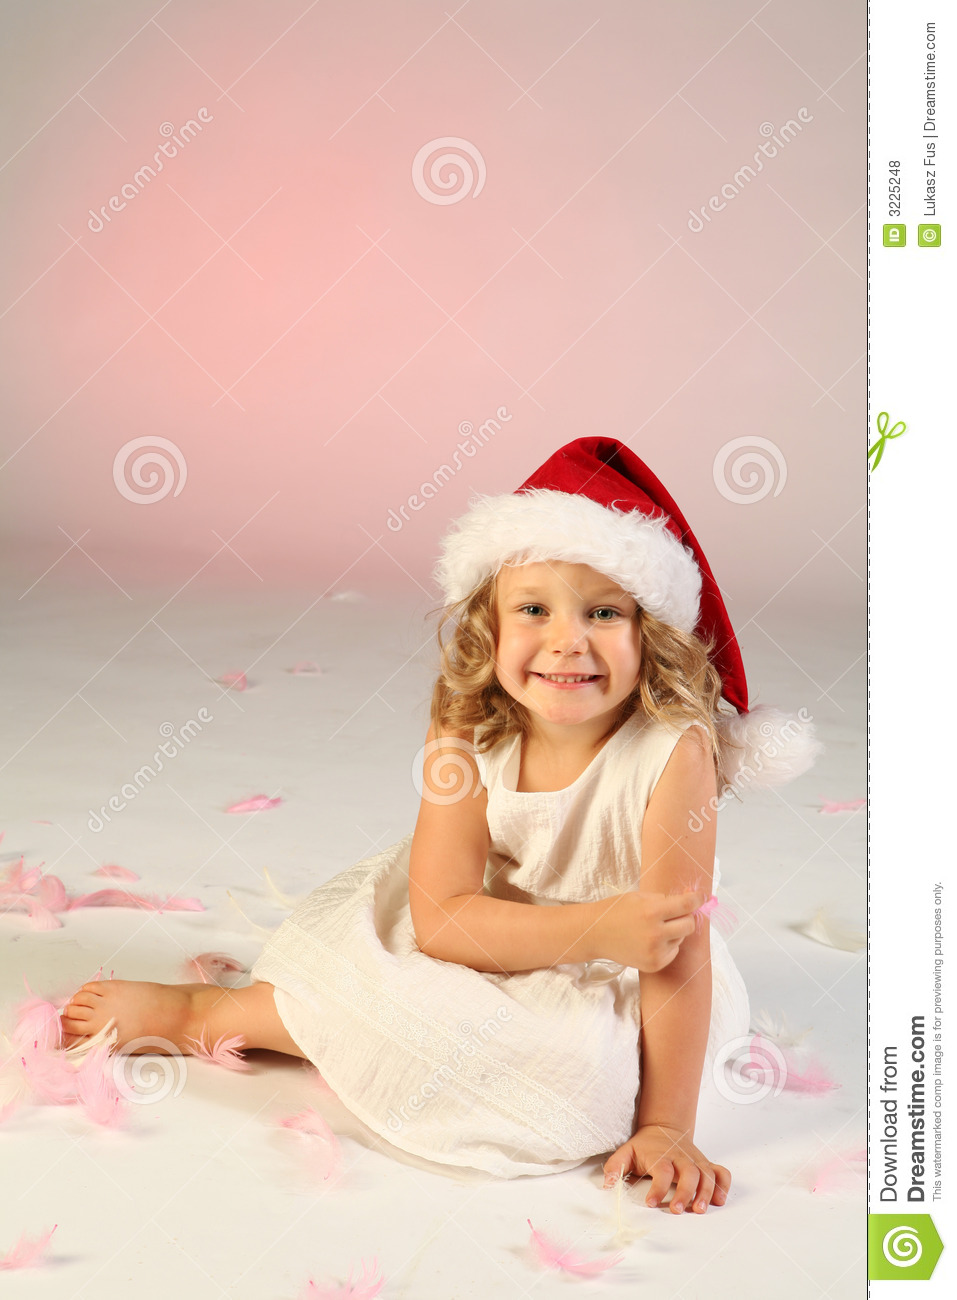 Little Girl Wearing Santa Hat Stock Photo - Image of pink 5dfe1644fa9d